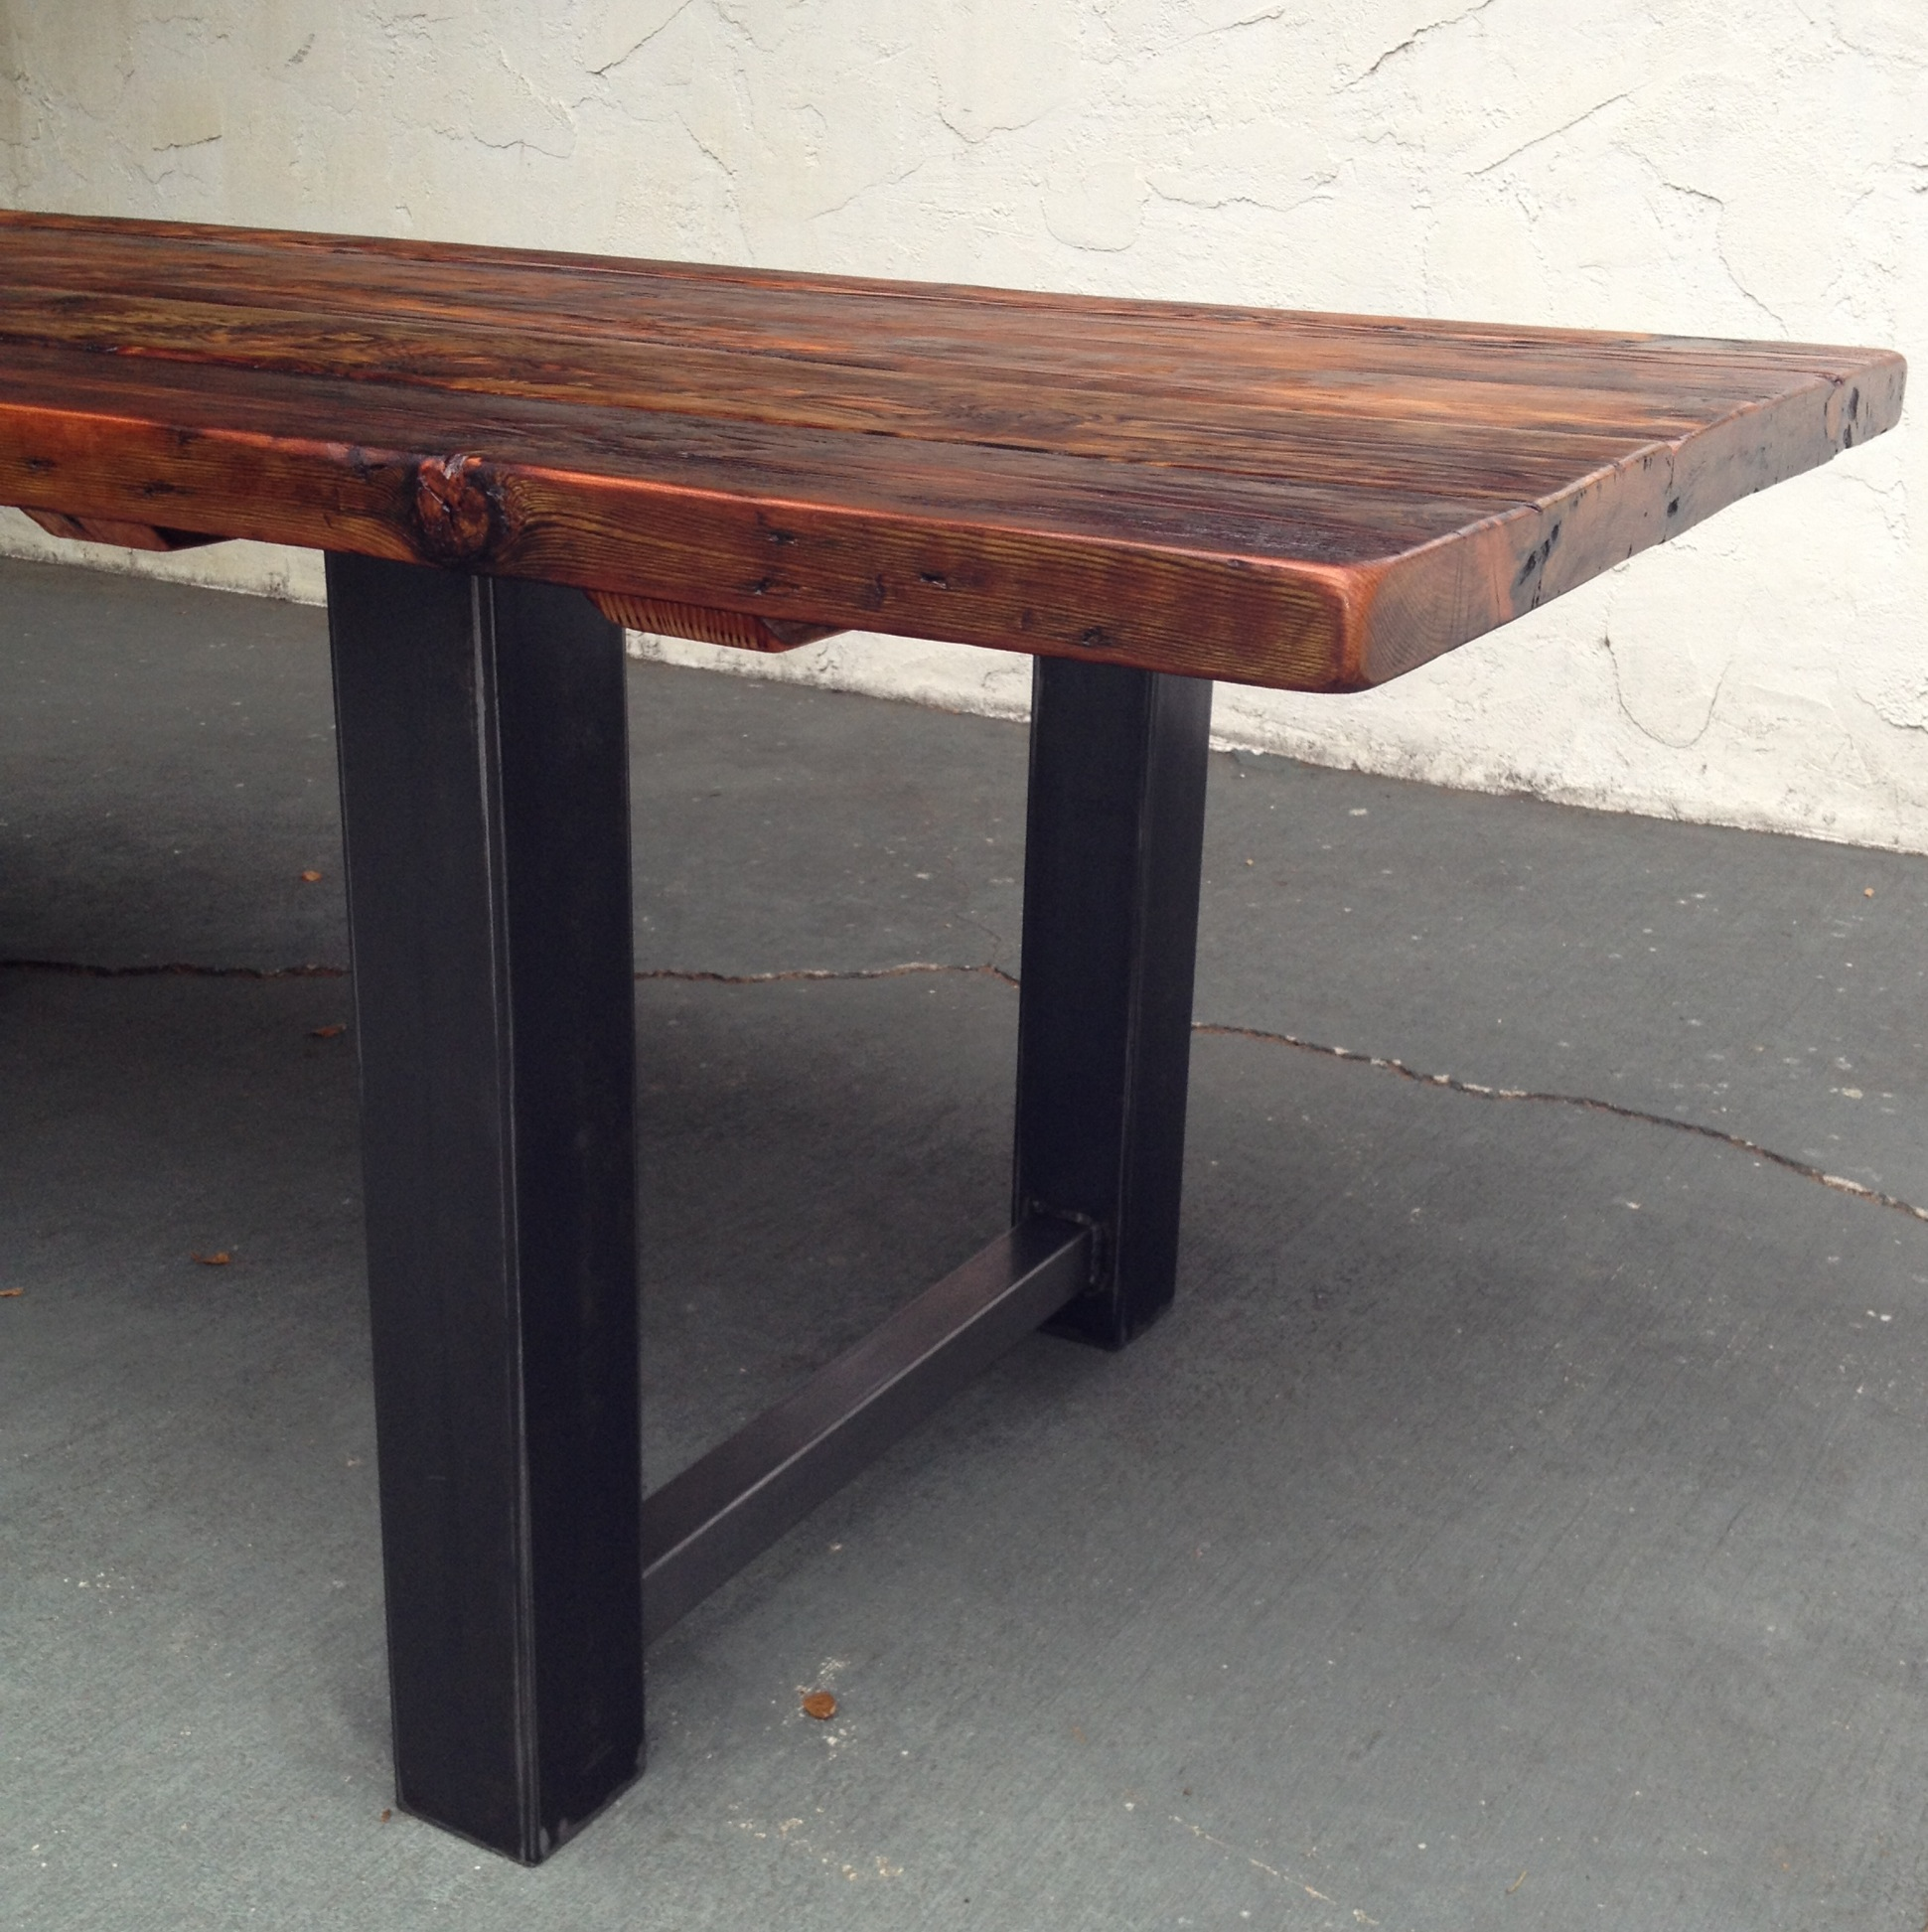 Reclaimed Wood And Metal Dining Table 5